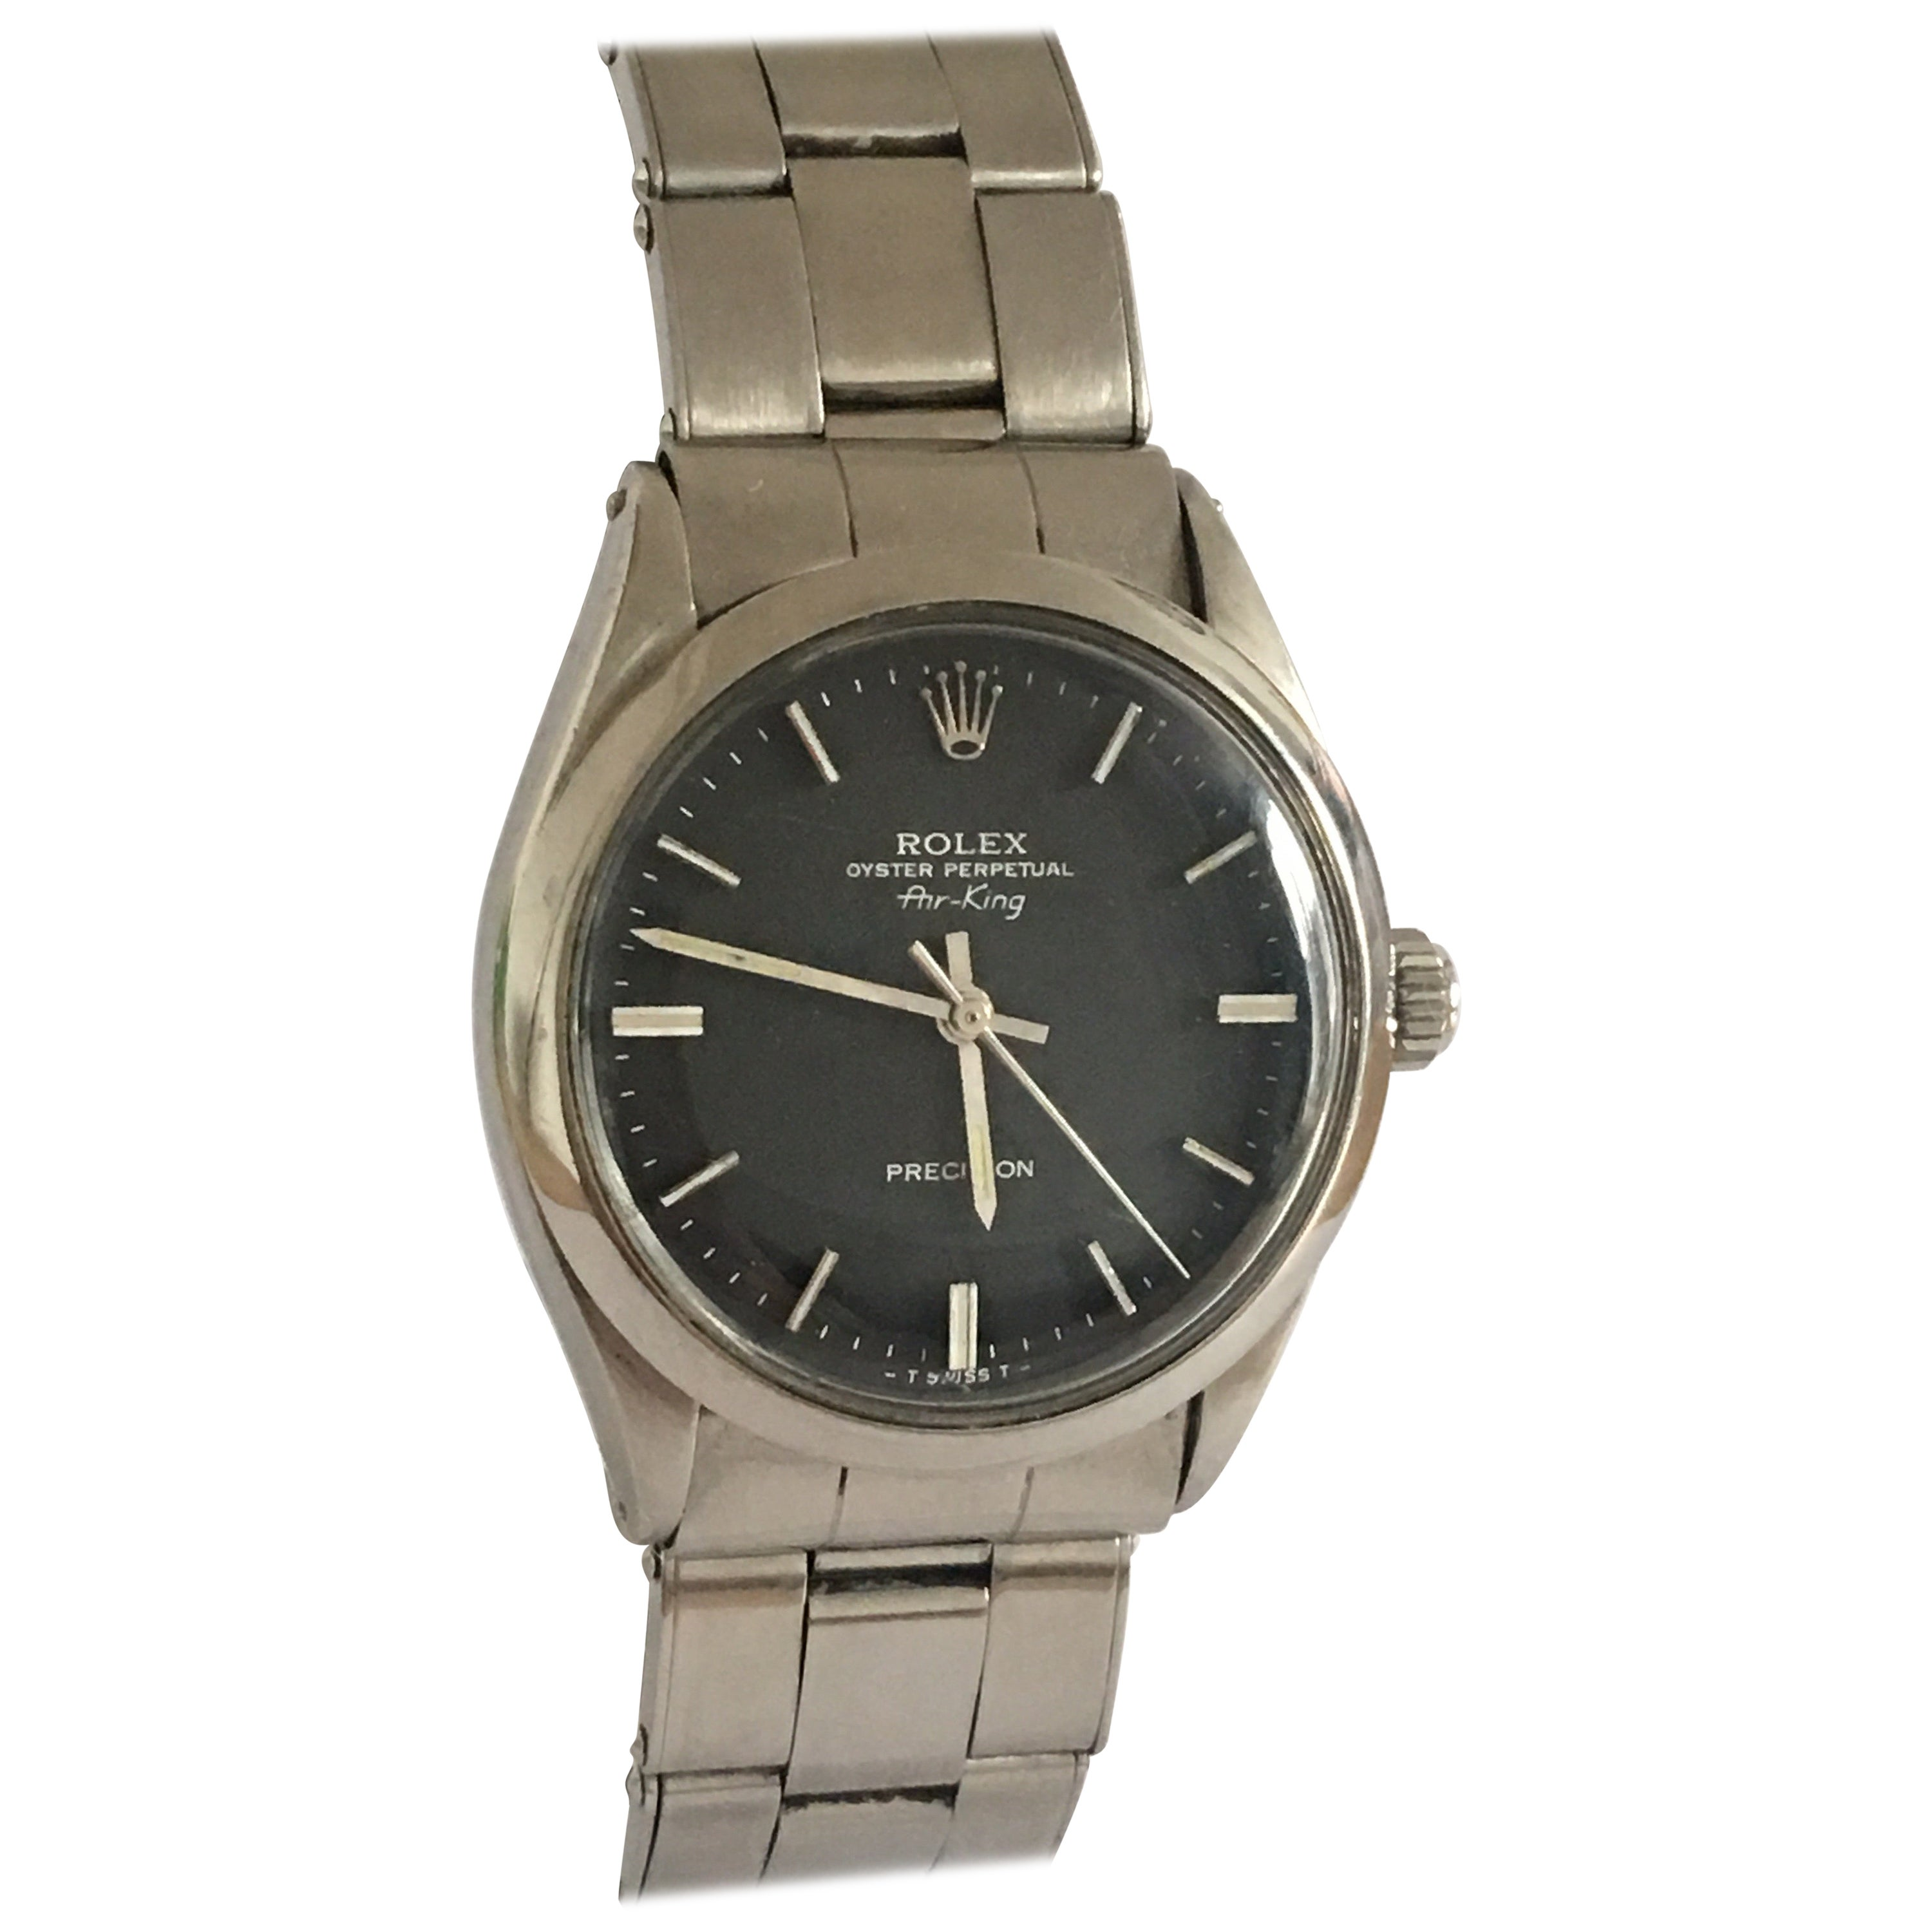 Vintage 1960s Rolex Oyster Perpetual Air-King Precision, 1520